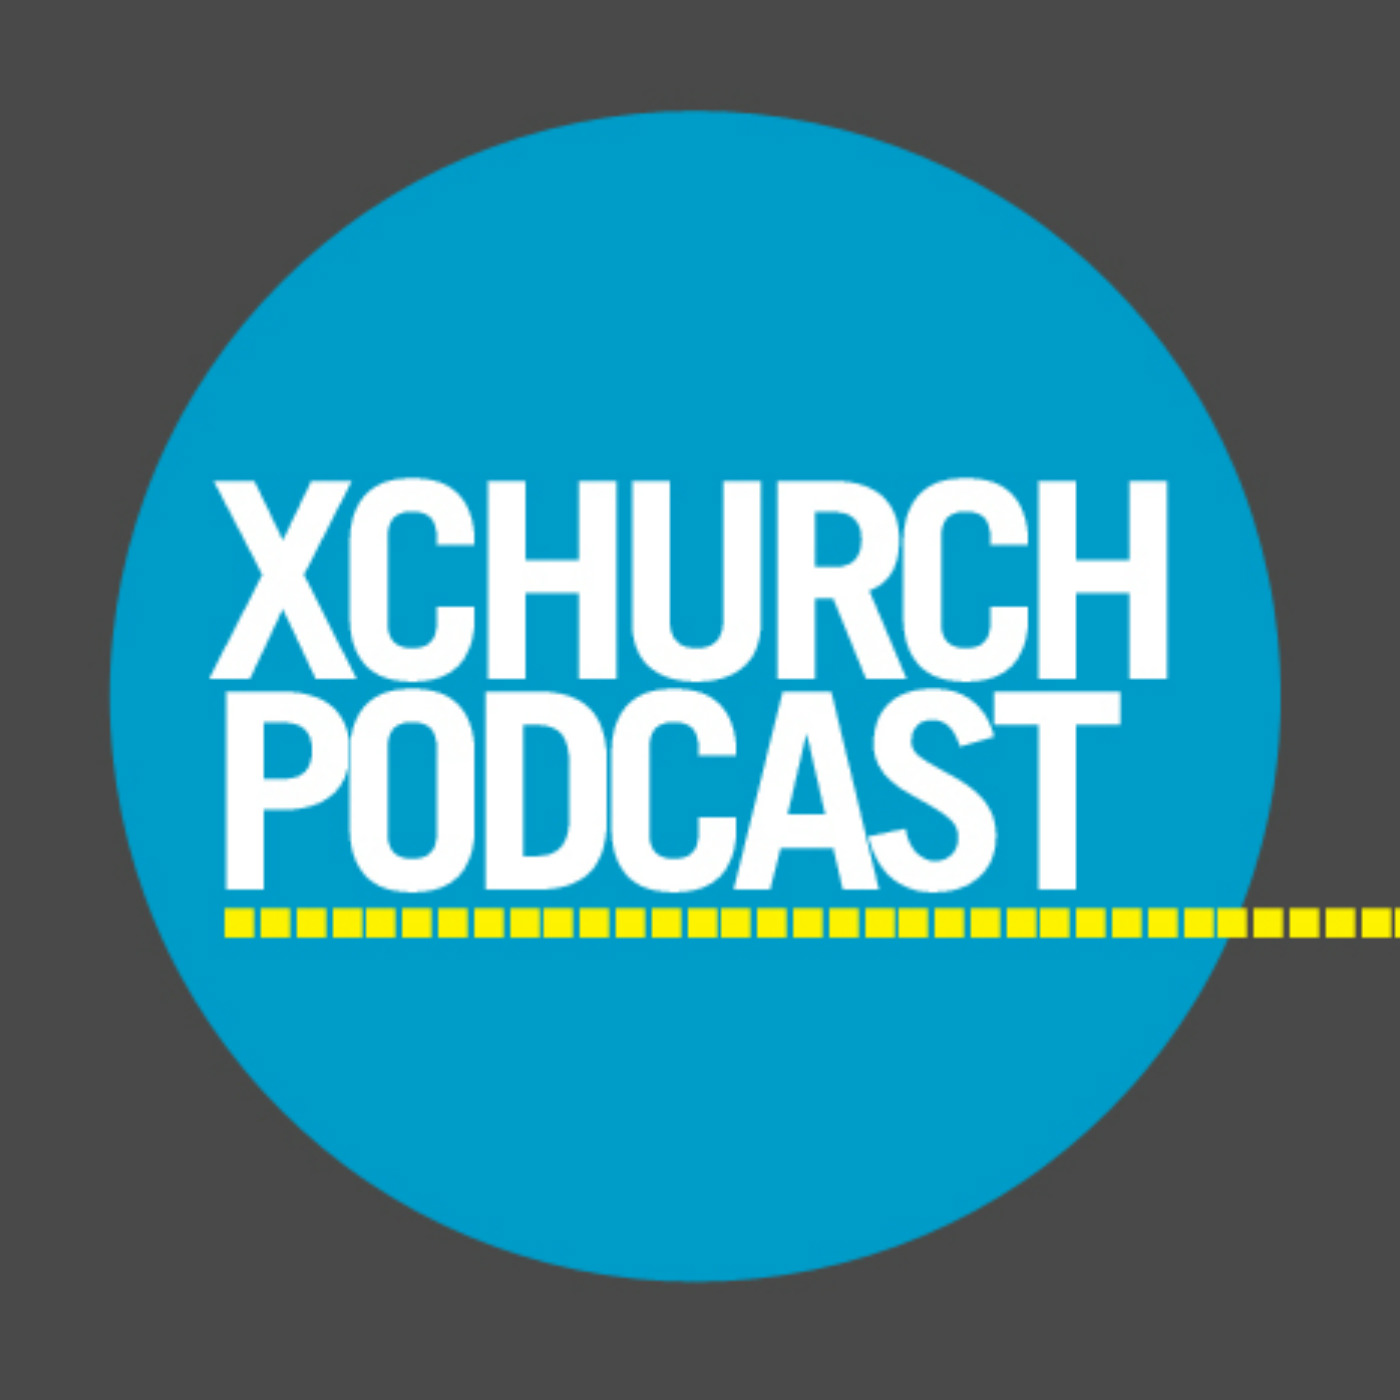 XCHURCH PODCAST